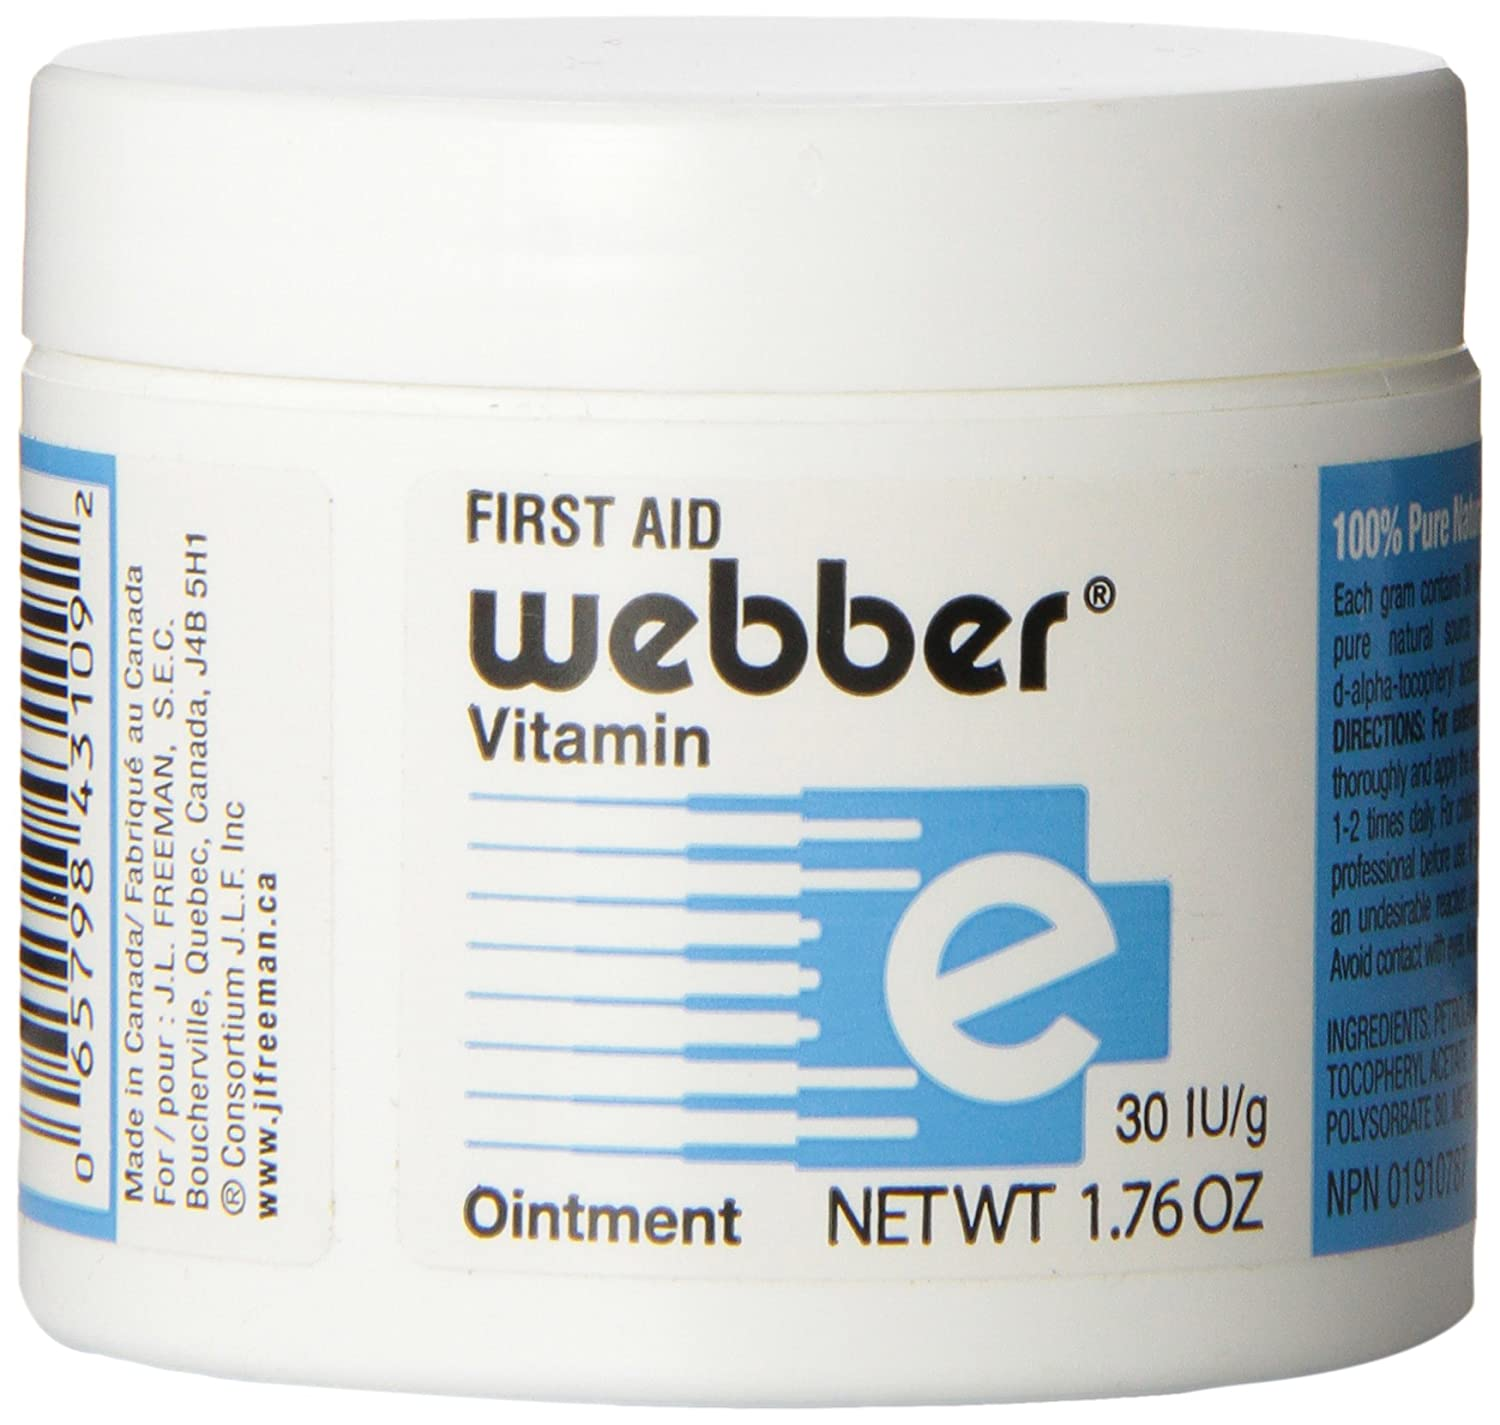 Webber Natural First Aid Ointment, Protects against Infections and Provides fast healing with Vitamin E to fight Scars from Cesarean and Cuts, Burns from Tattoos, Wrinkles, Acne and Very Dry Skin